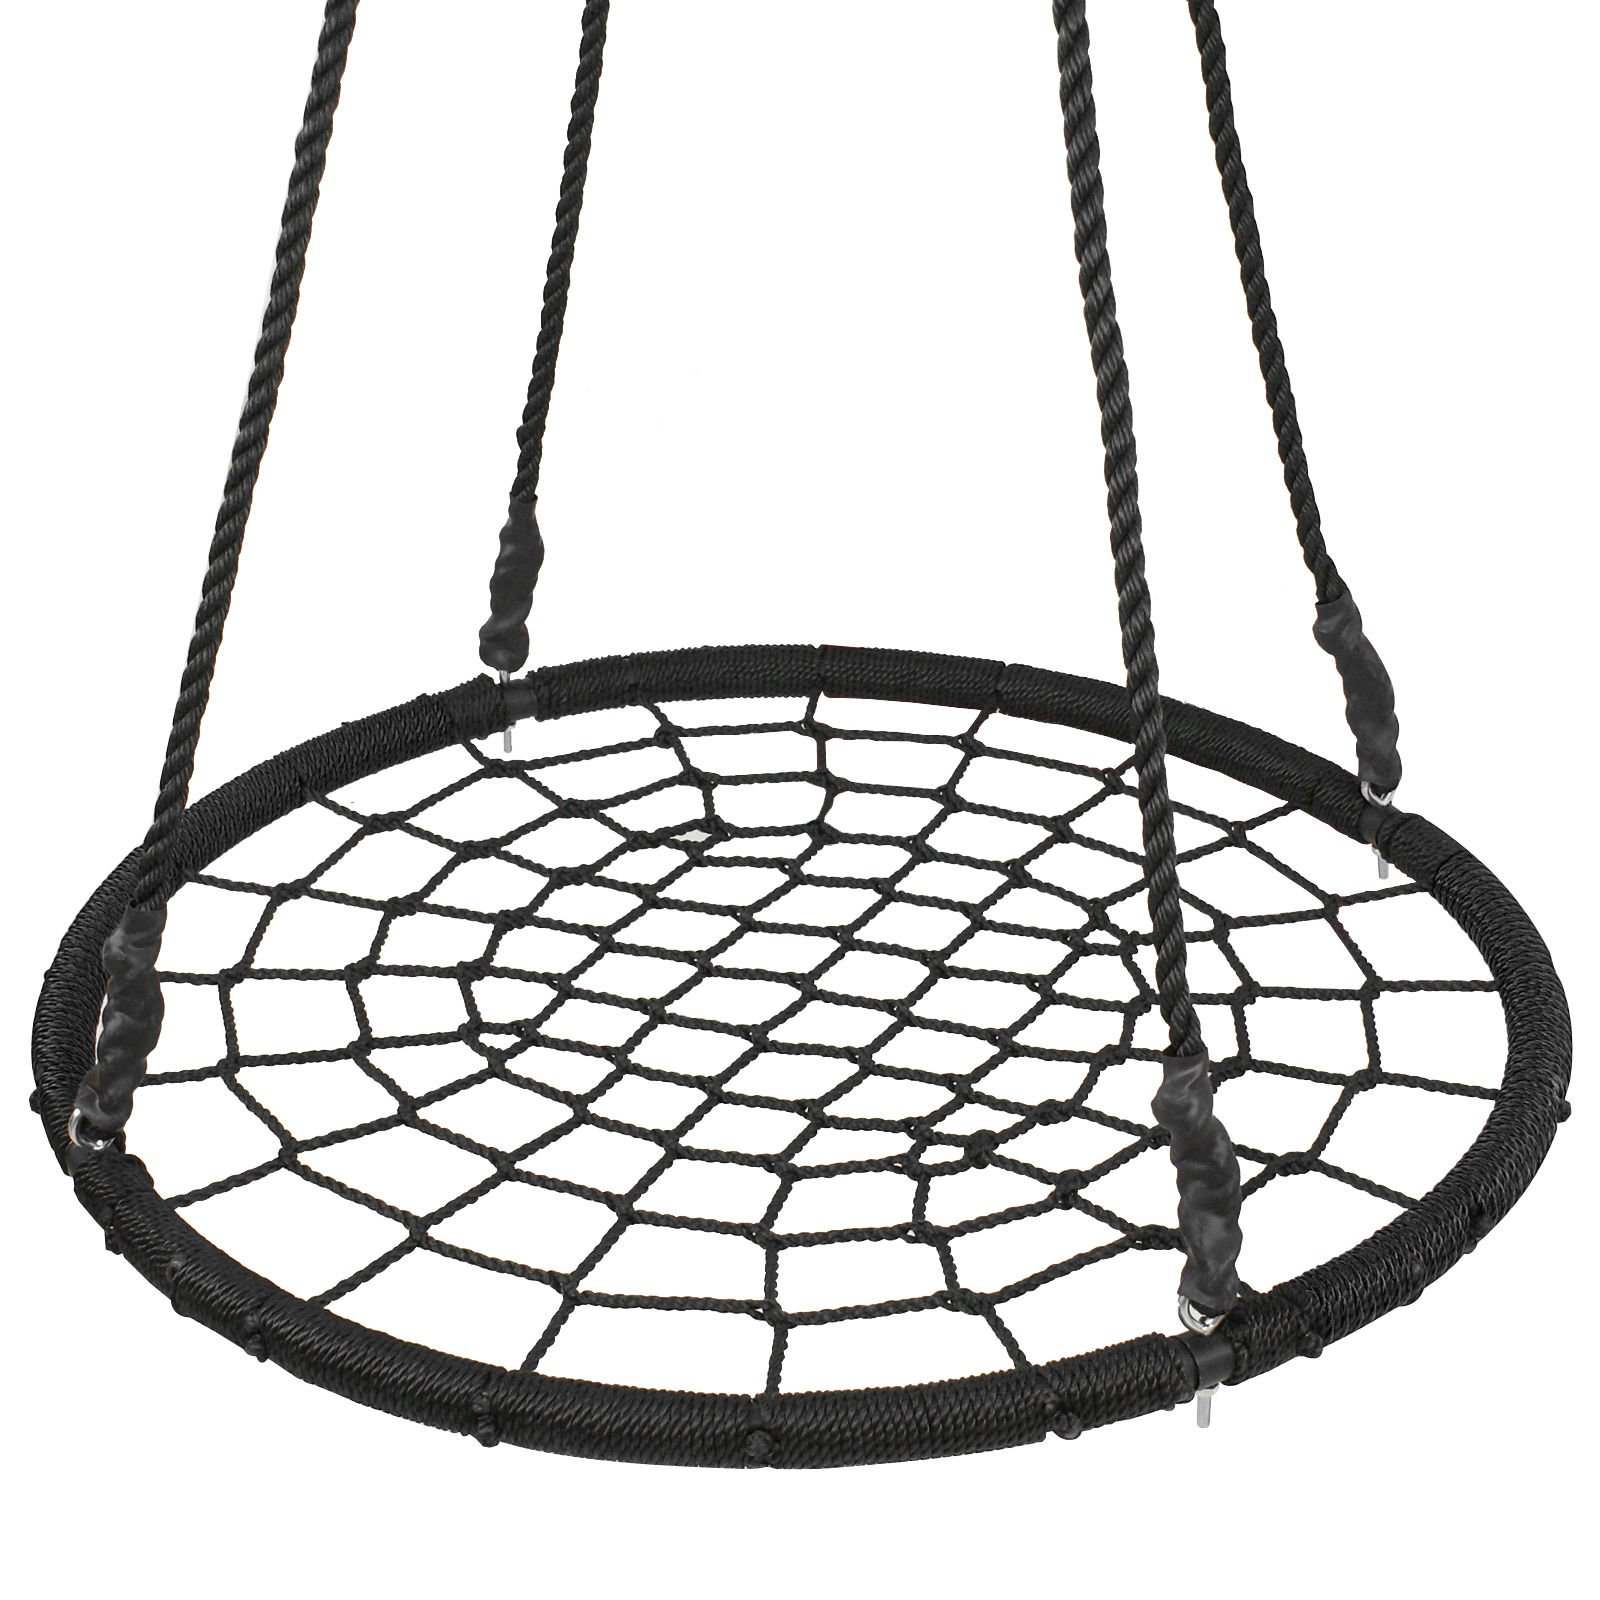 Antik shop Tree Swing,Large Safe Home Safes,Rope net,Rope Spider Web, by Antik shop